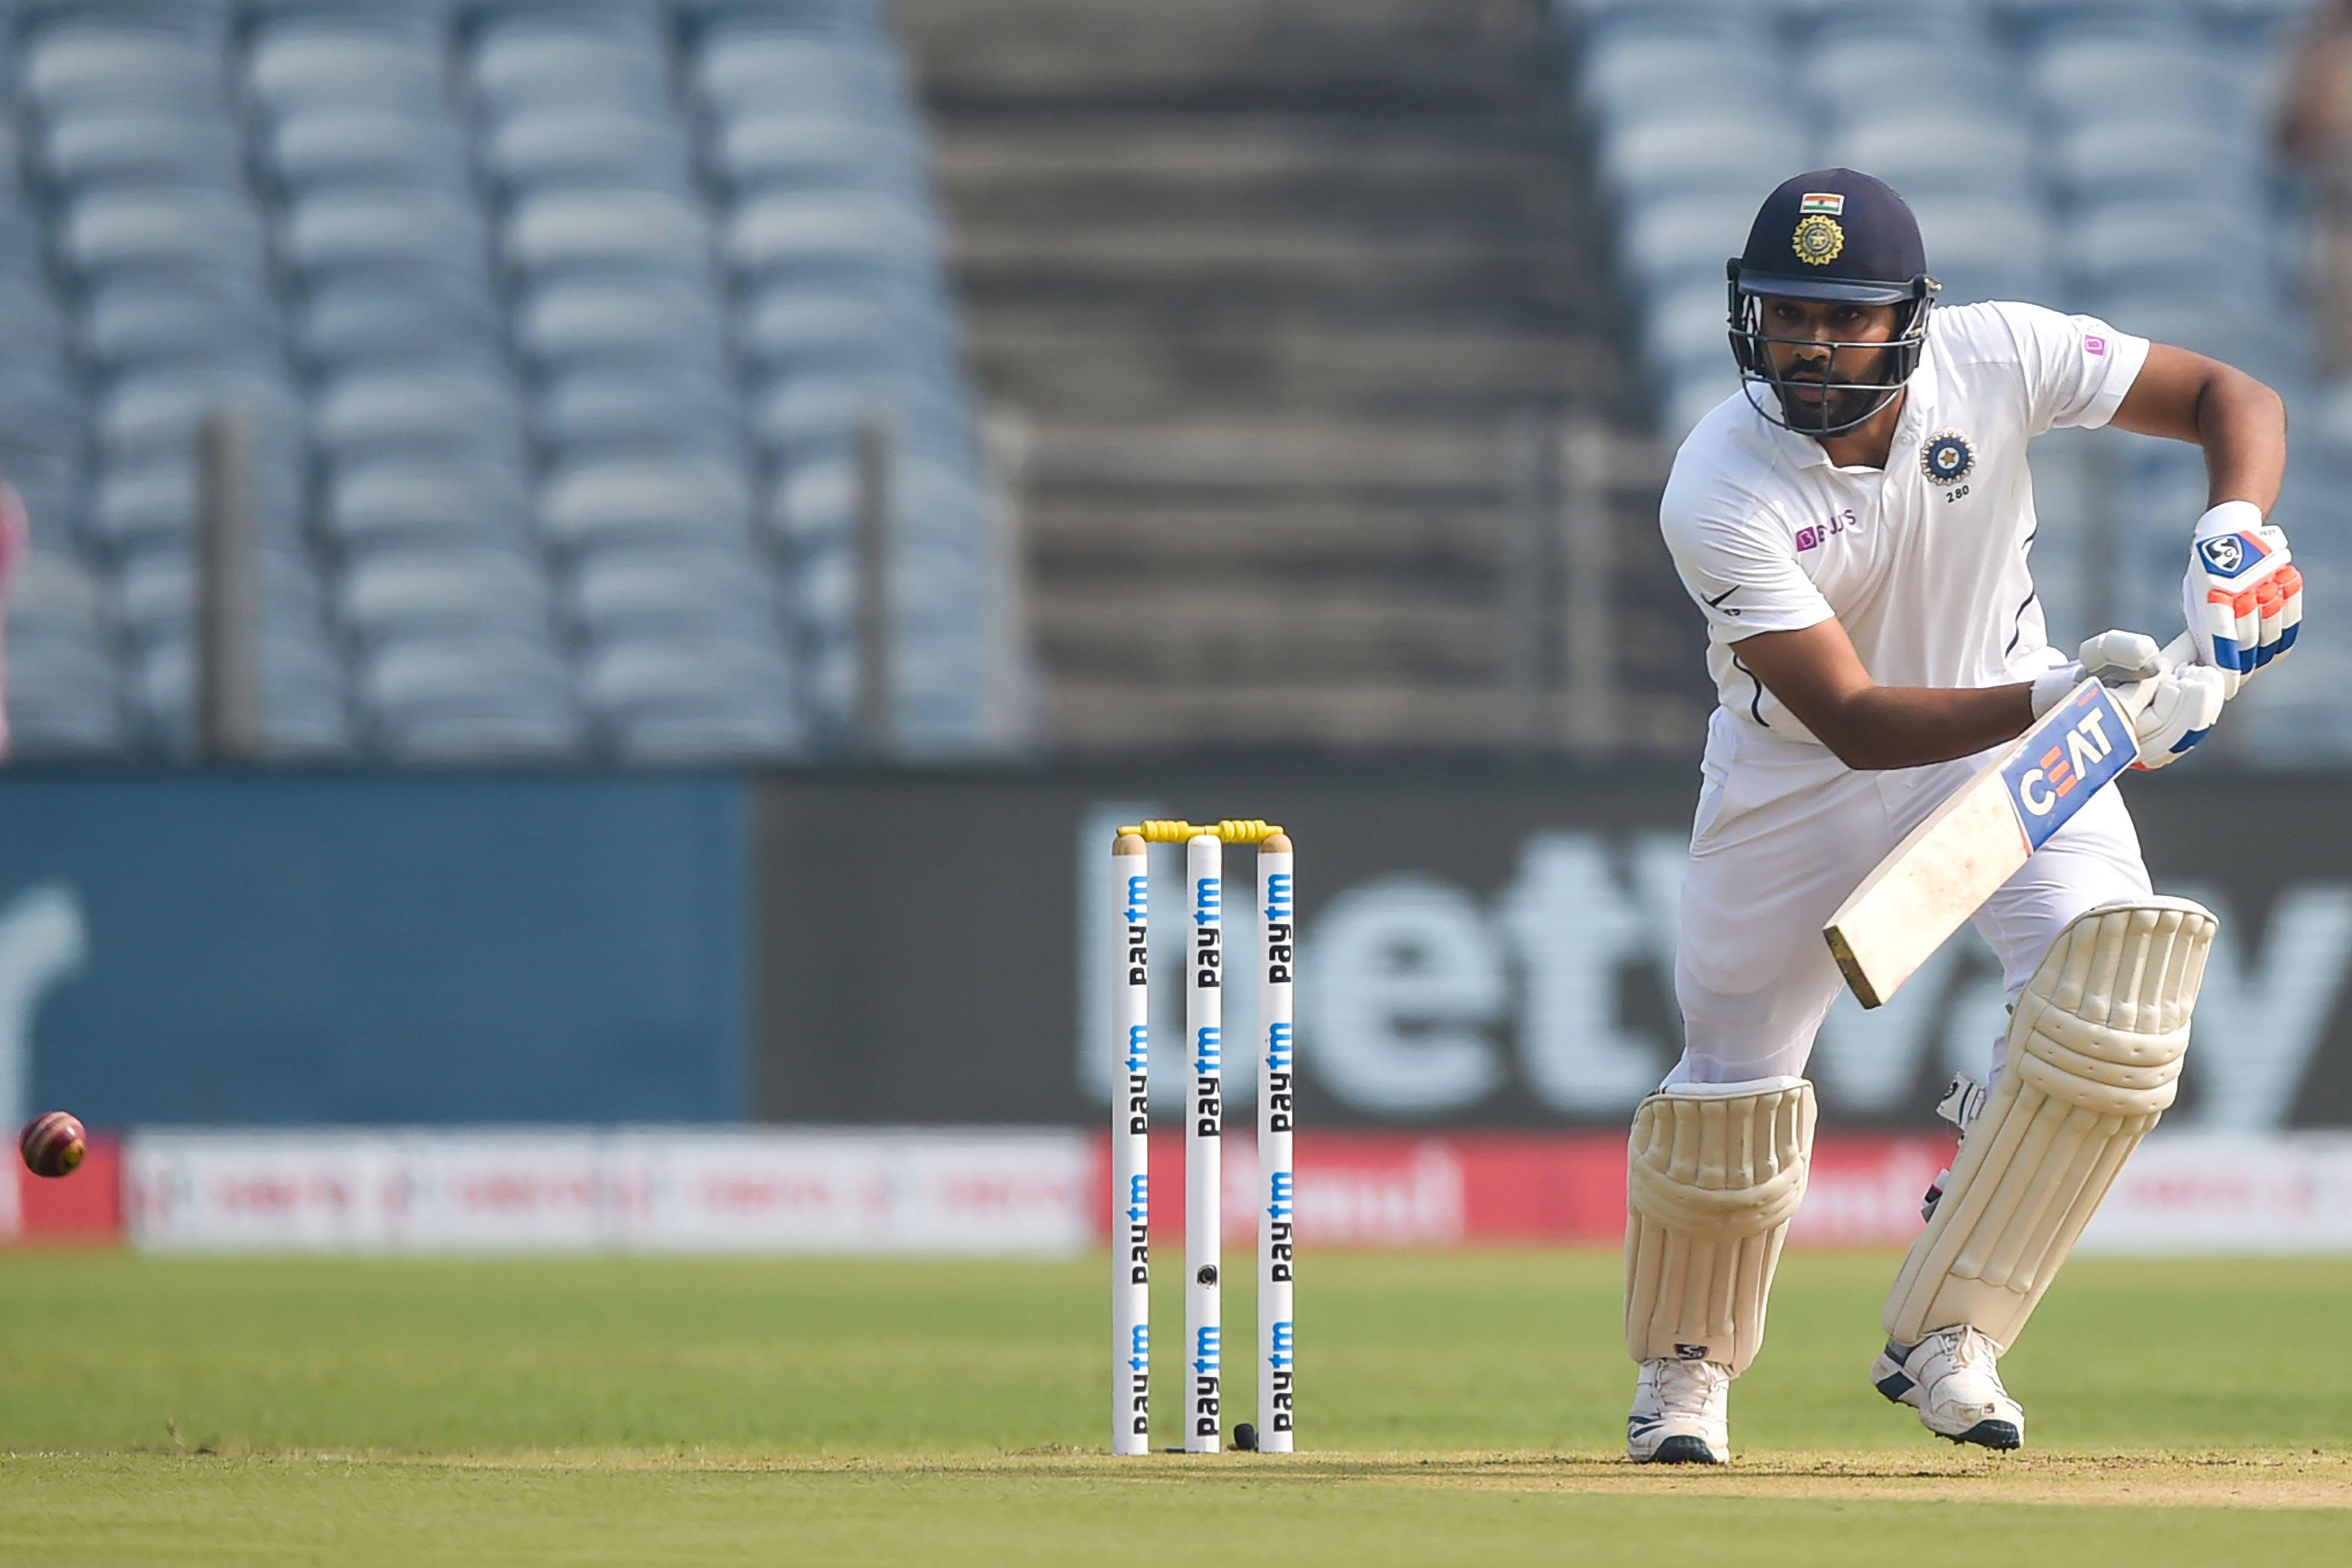 India vs South Africa 2nd Test match: India wins toss, opts to bat first